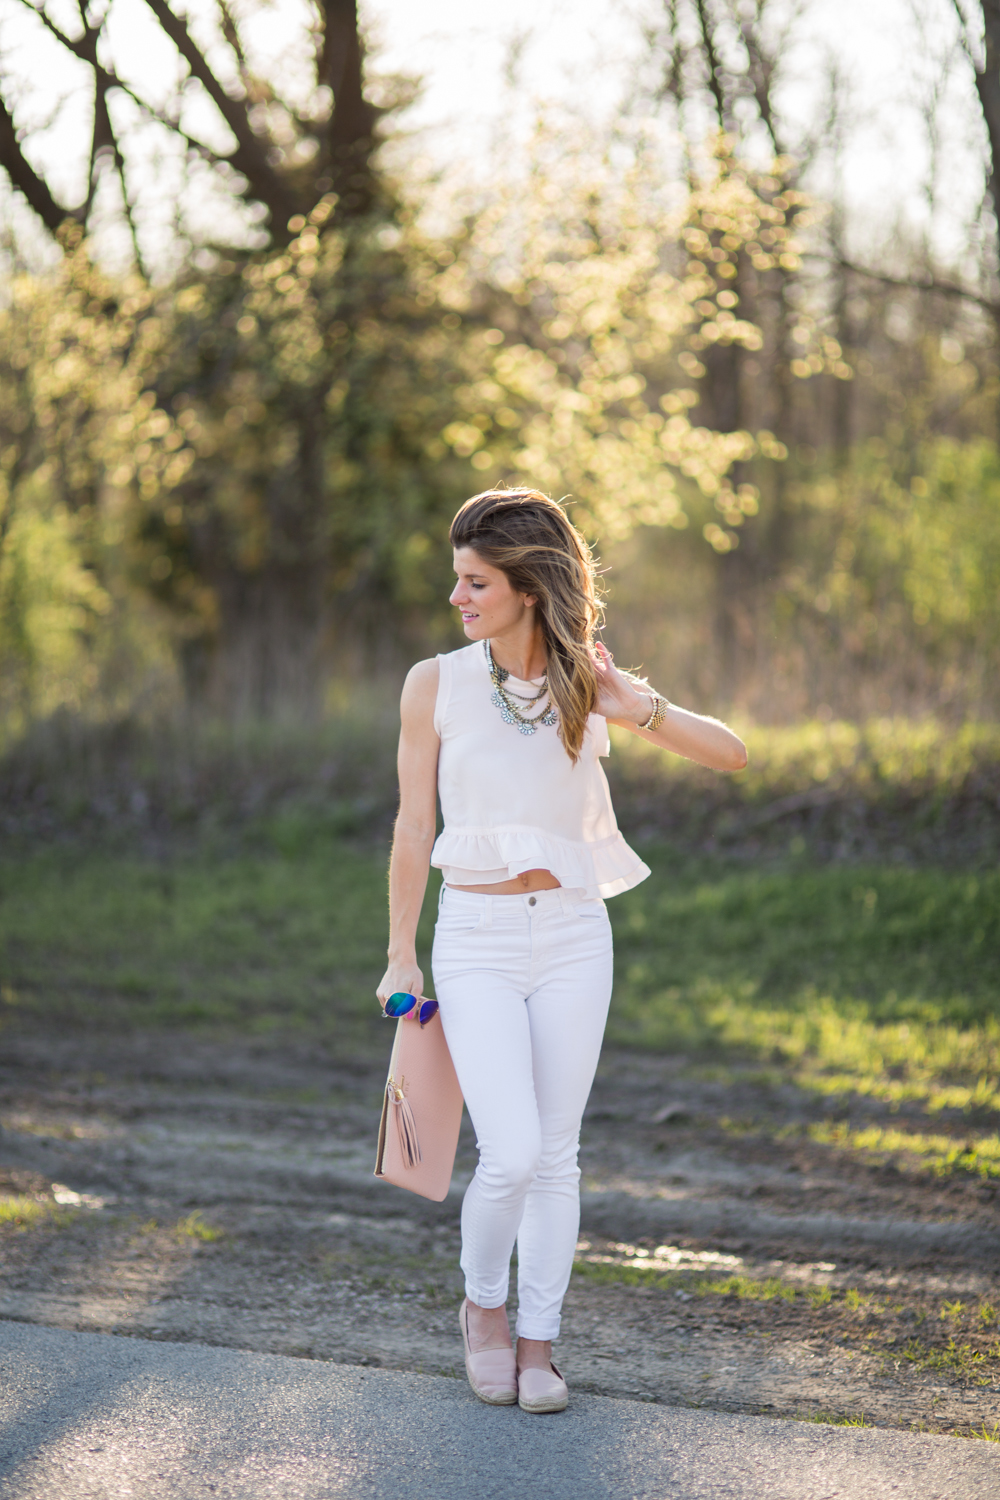 Blush Peplum Top and White Jeans5